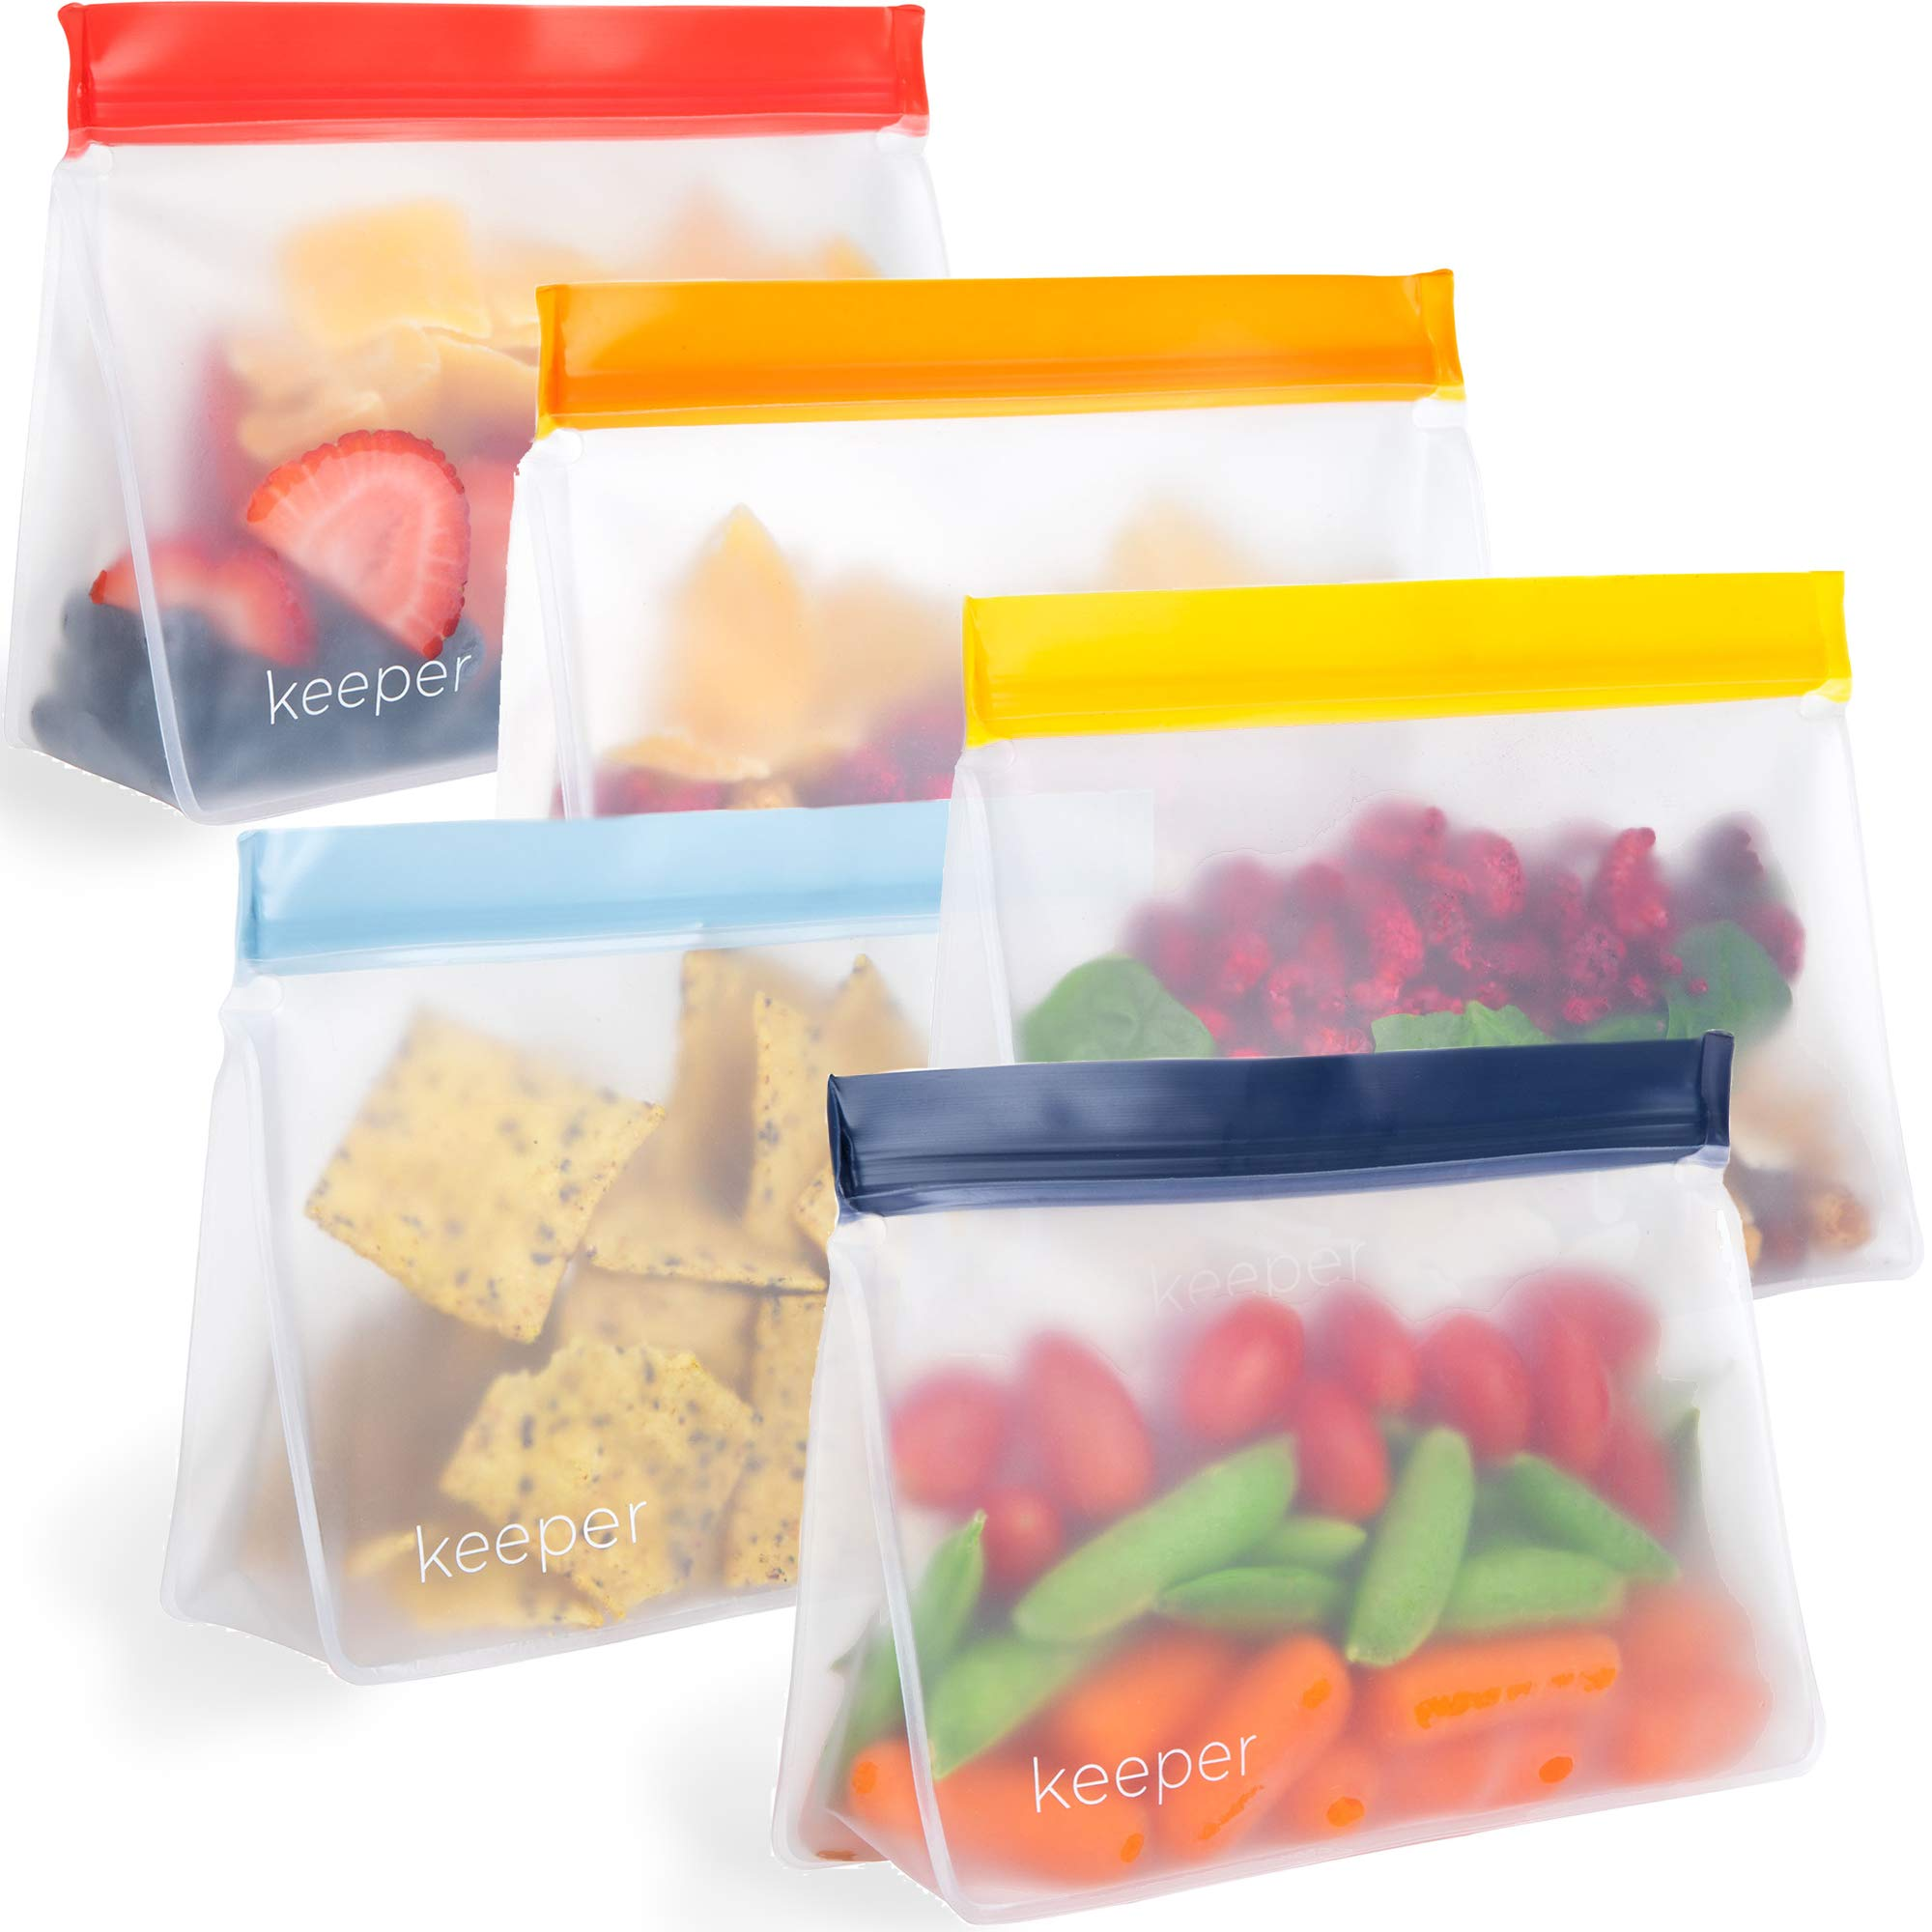 Keeper Reusable Snack Bags (Set of 5, 32 oz) - Reusable Sandwich Bags for Kids Are Resealable Thick Reusable Ziplock Bag For Food, Lunch Storage. Freezer Safe Plastic Lunch Baggies are Hand Washable by Keeper Life